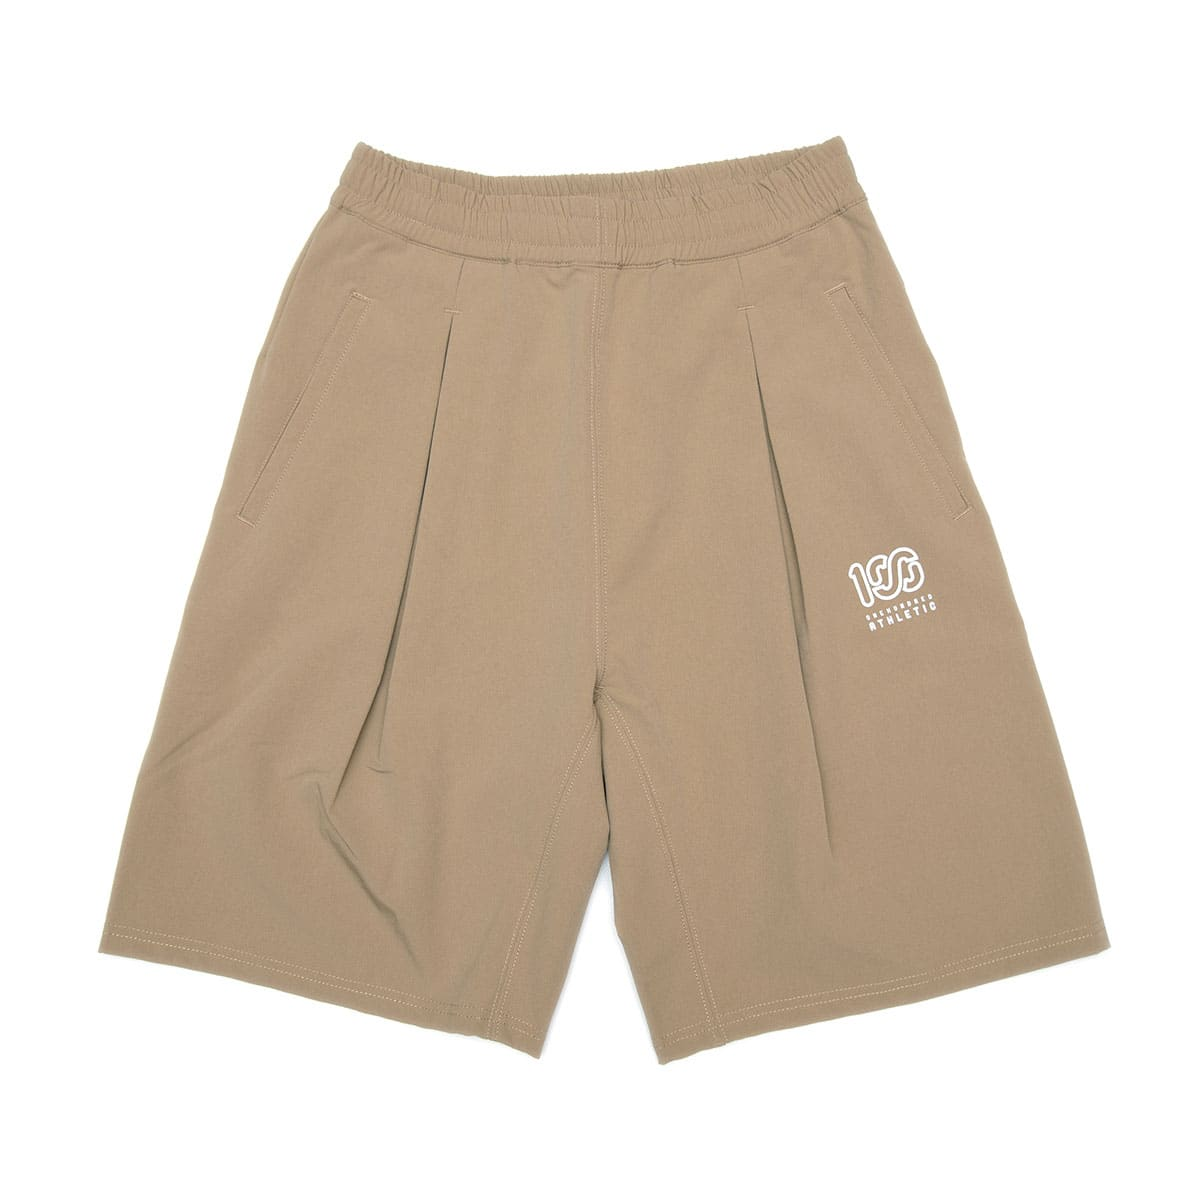 100A BAGGY SHORTS BEIGE 20SU-I_photo_large